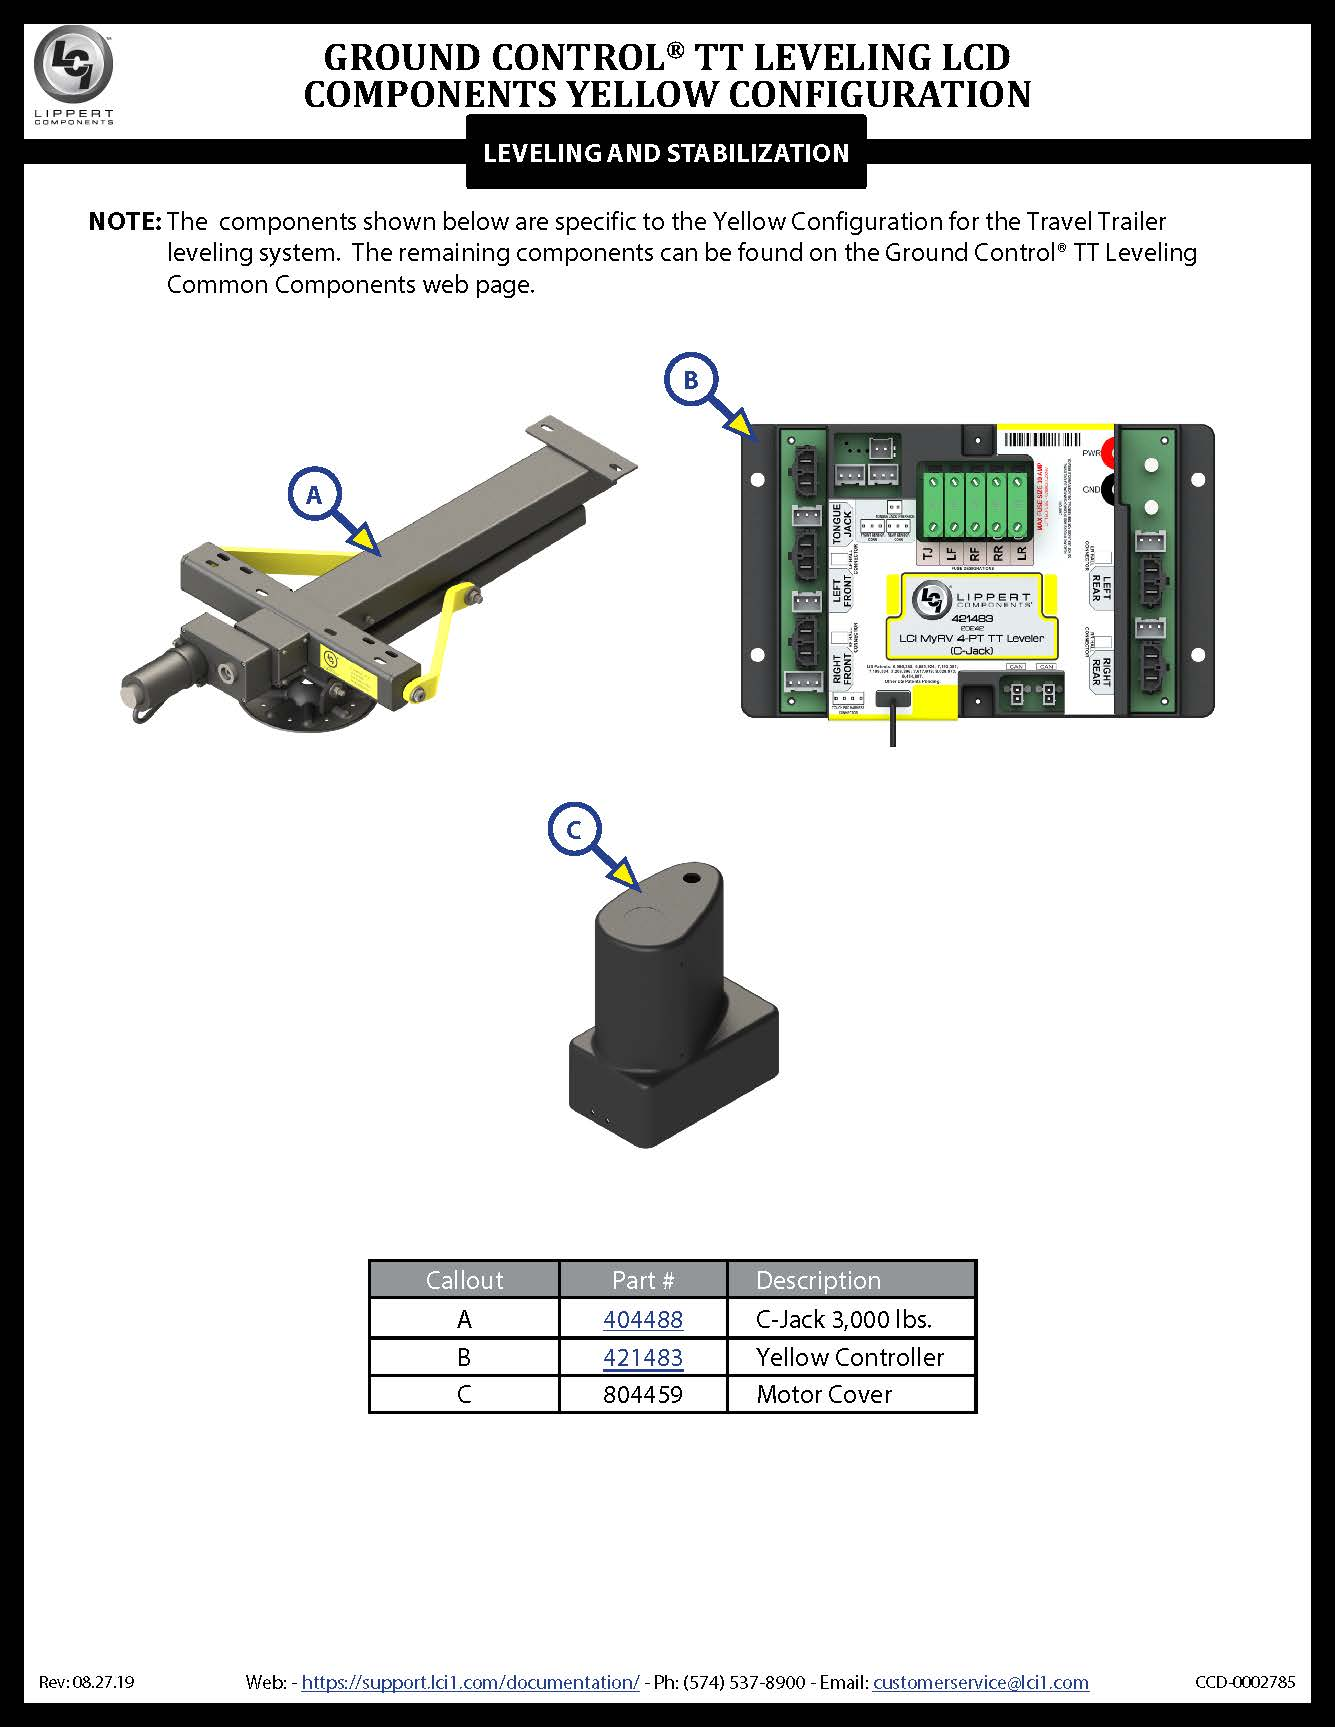 Ground Control® TT Leveling LCD Yellow Configuration Components